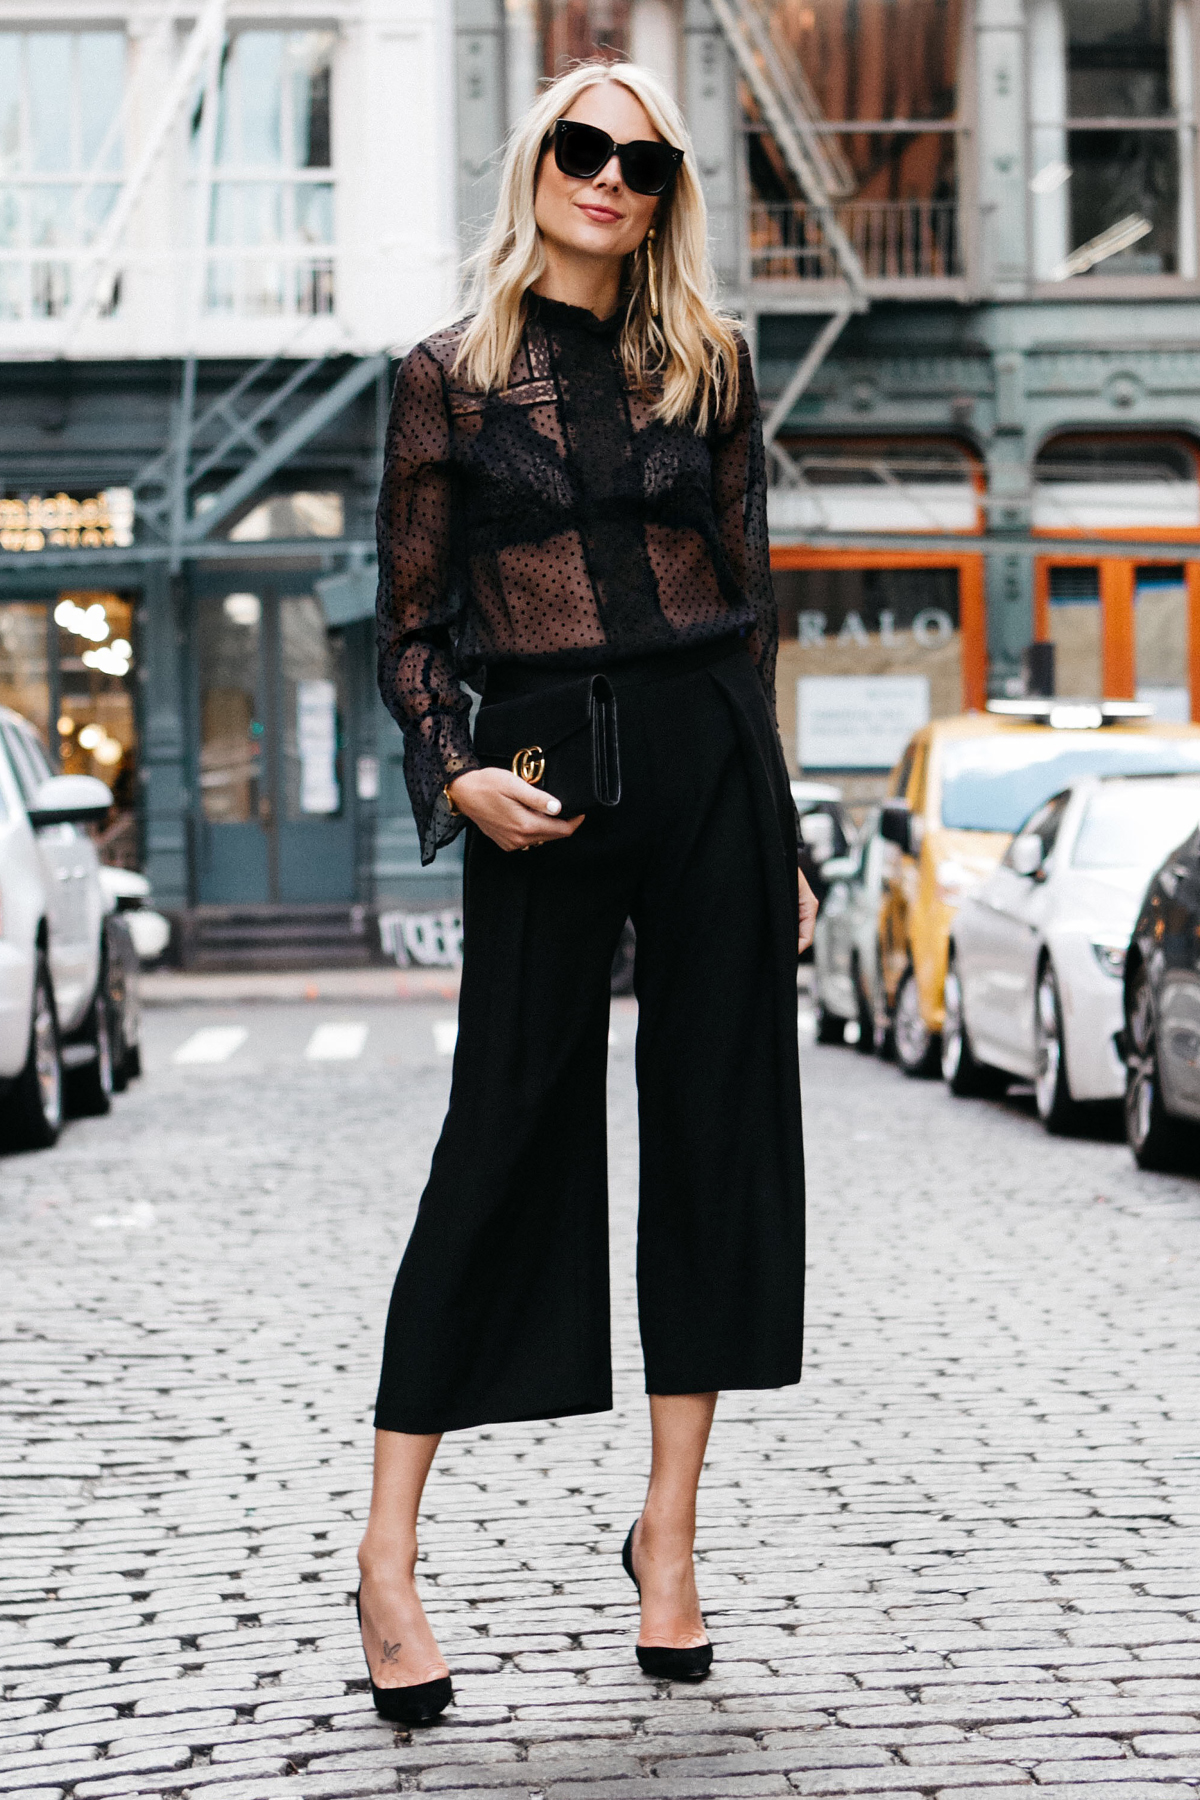 Blonde Woman Wearing Anine Bing Black Lace Top Black Bra Black Culottes Christian Louboutin Black Pumps Gucci Marmont Handbag Fashion Jackson Dallas Blogger Fashion Blogger Street Style NYFW